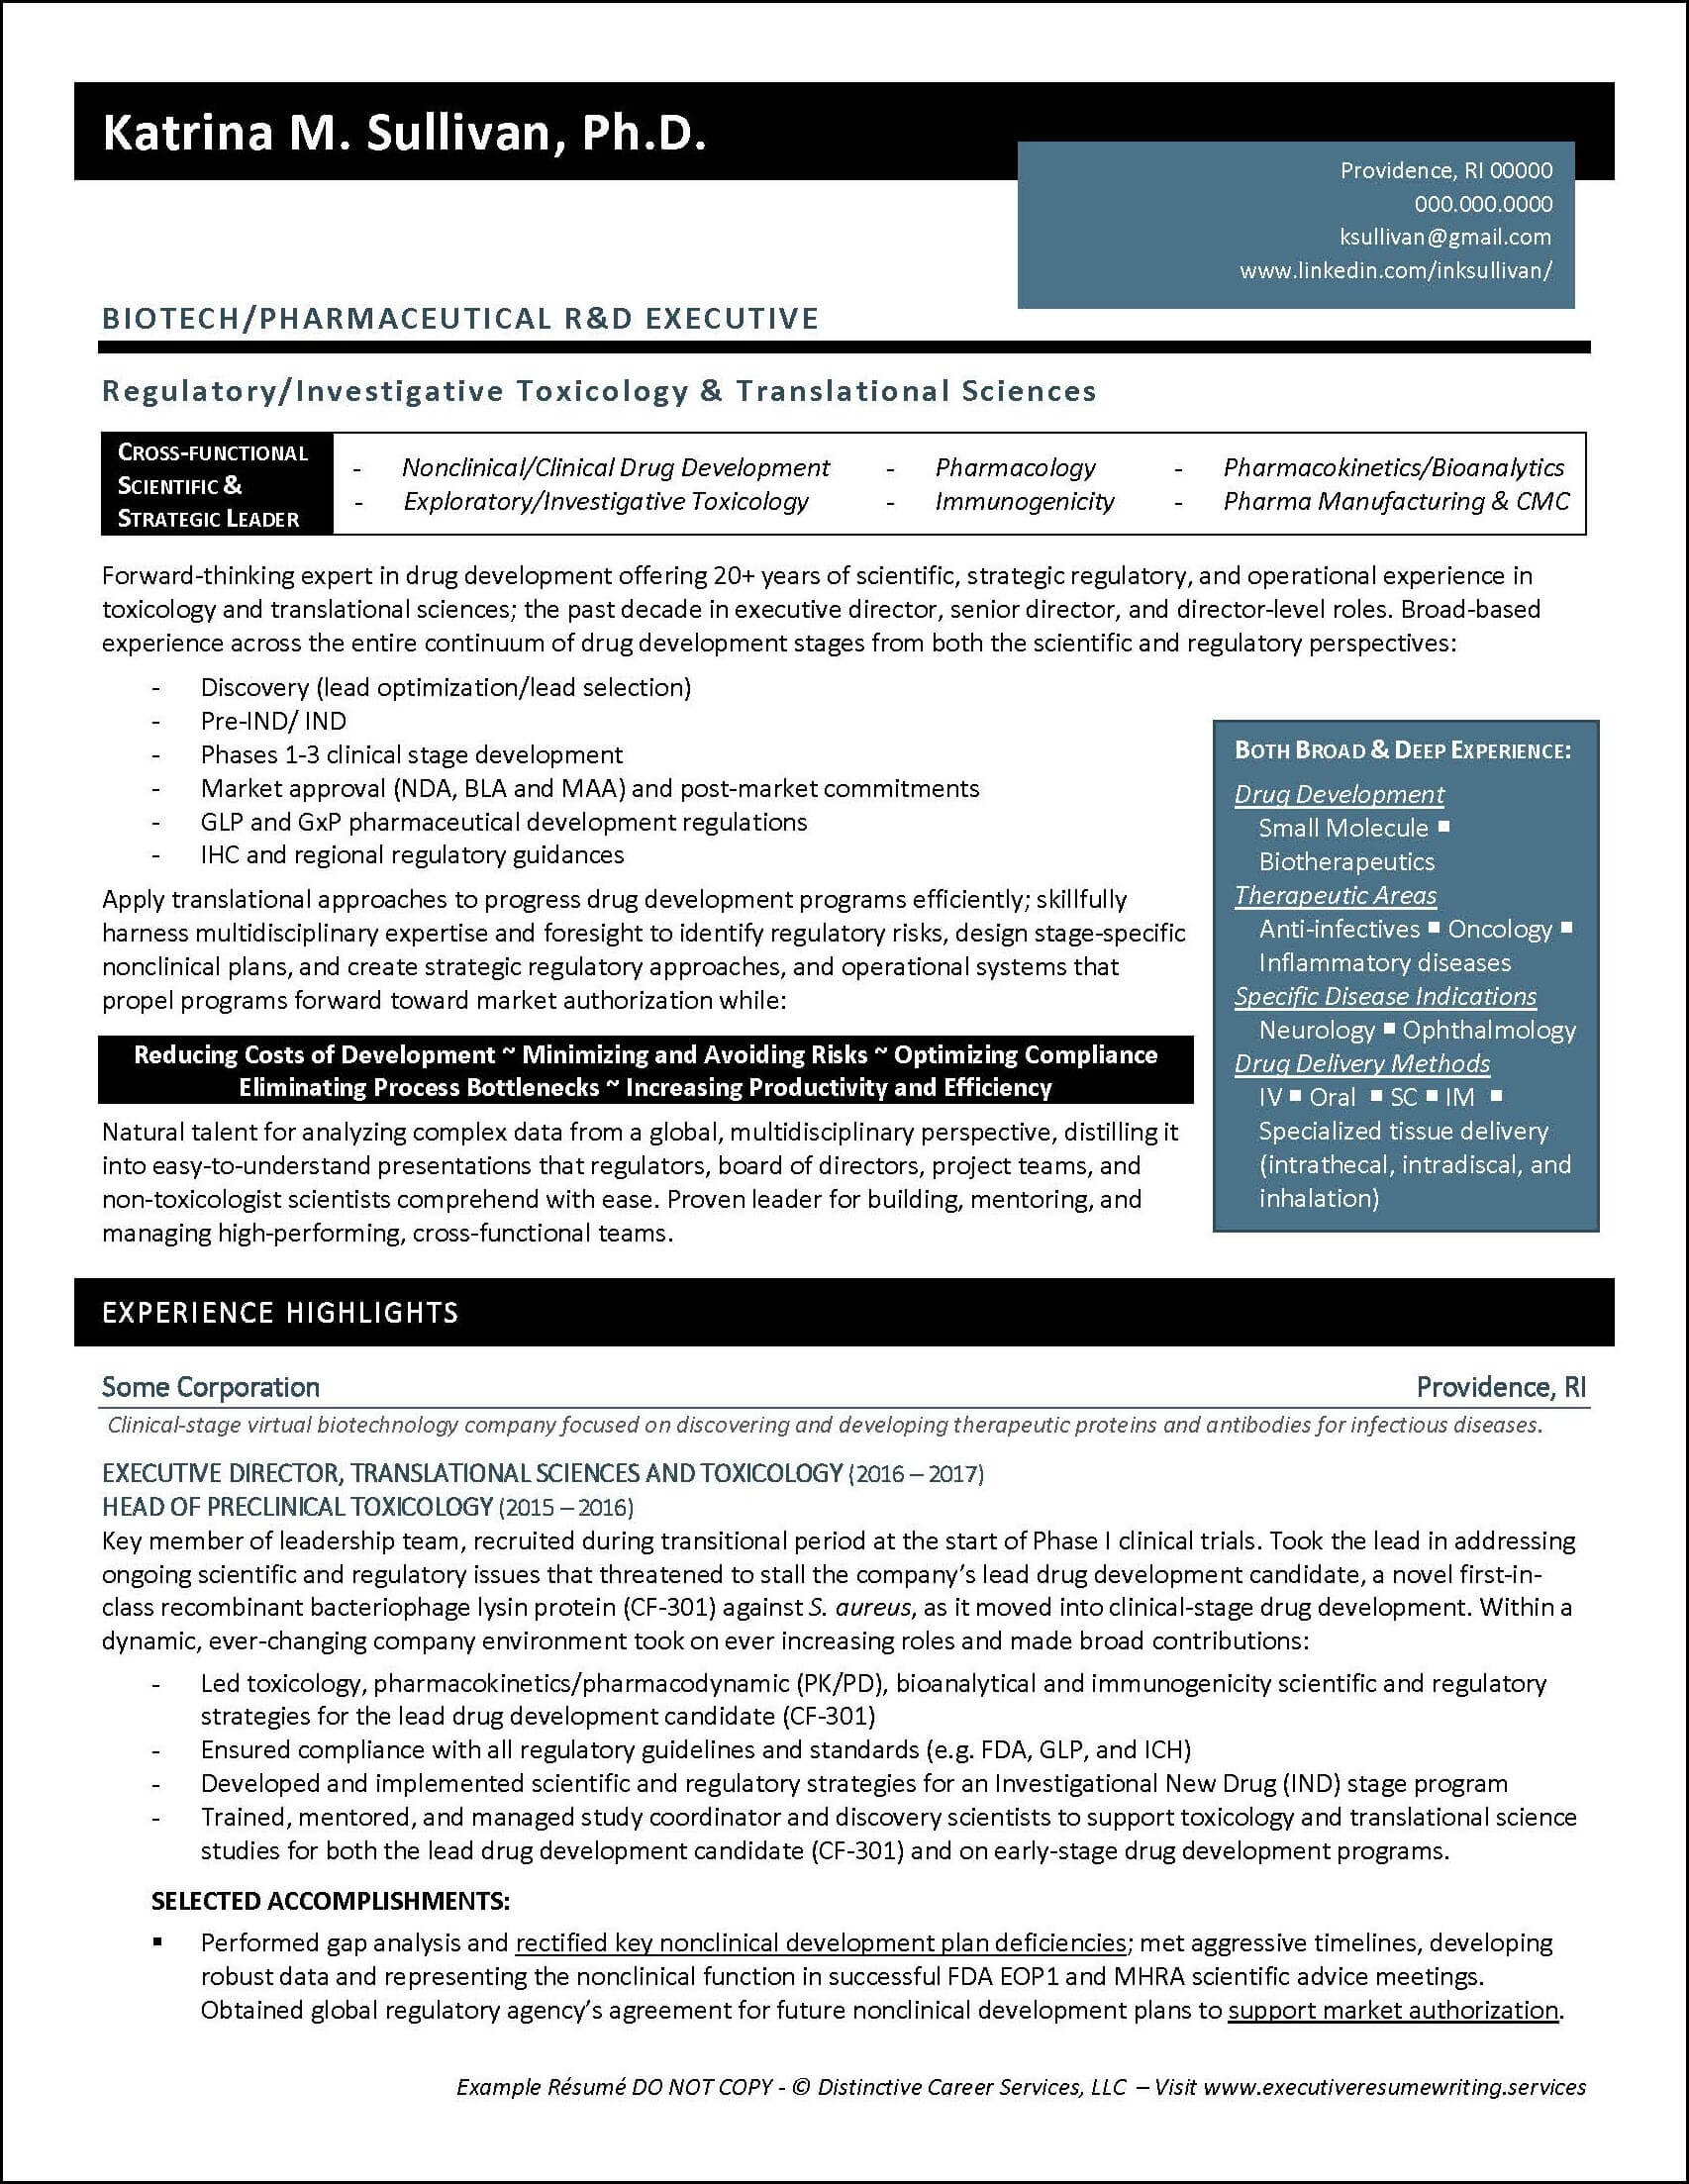 Example Executive Resume - Biotech R&D - pg1